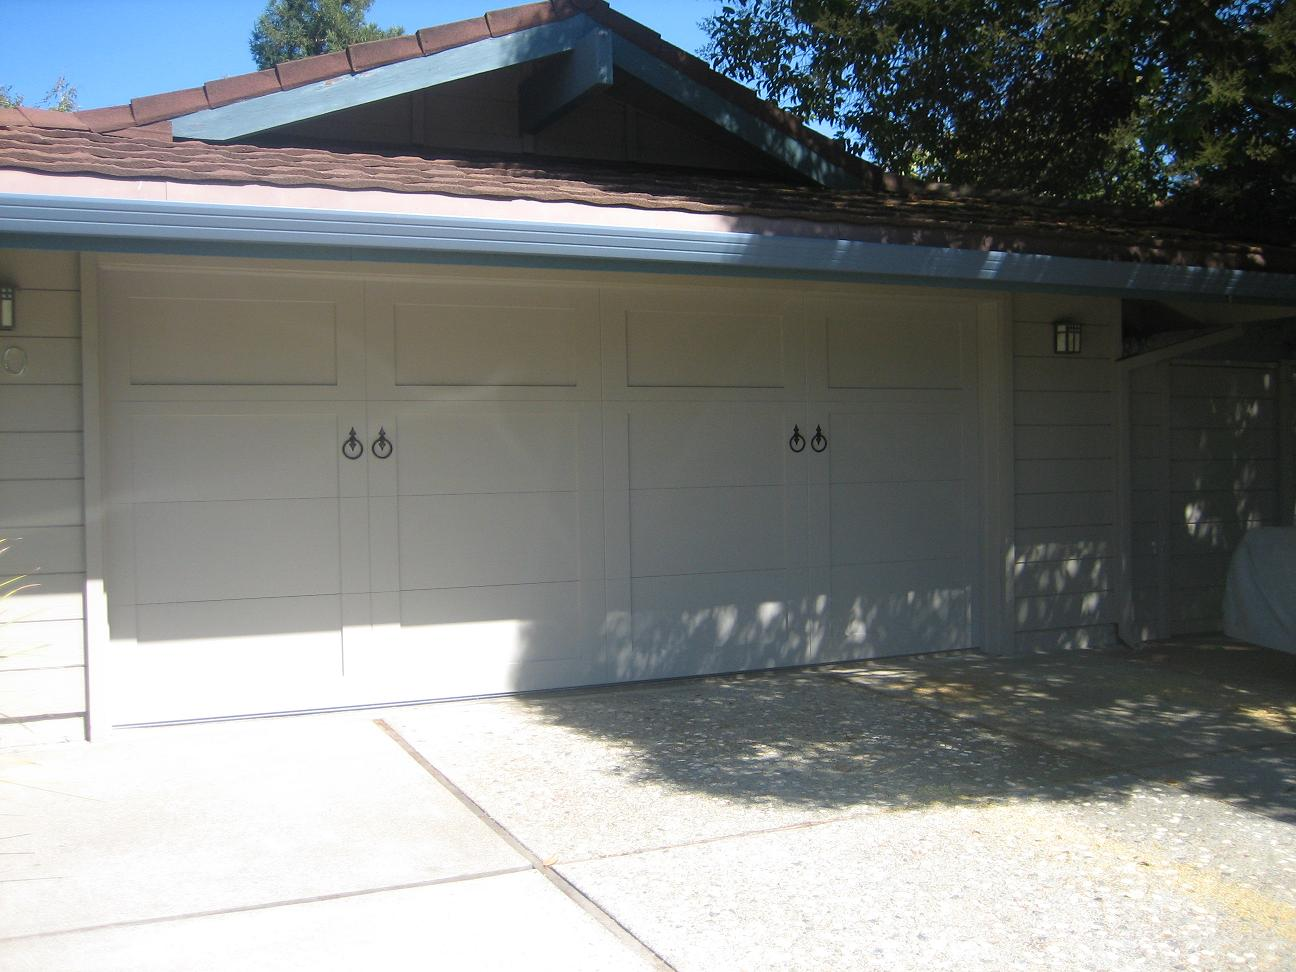 Steel Overlay Carriage Garage Doors. Steel Collection U2013 2 Car Solid Top U2013  With Ring Handle Hardware